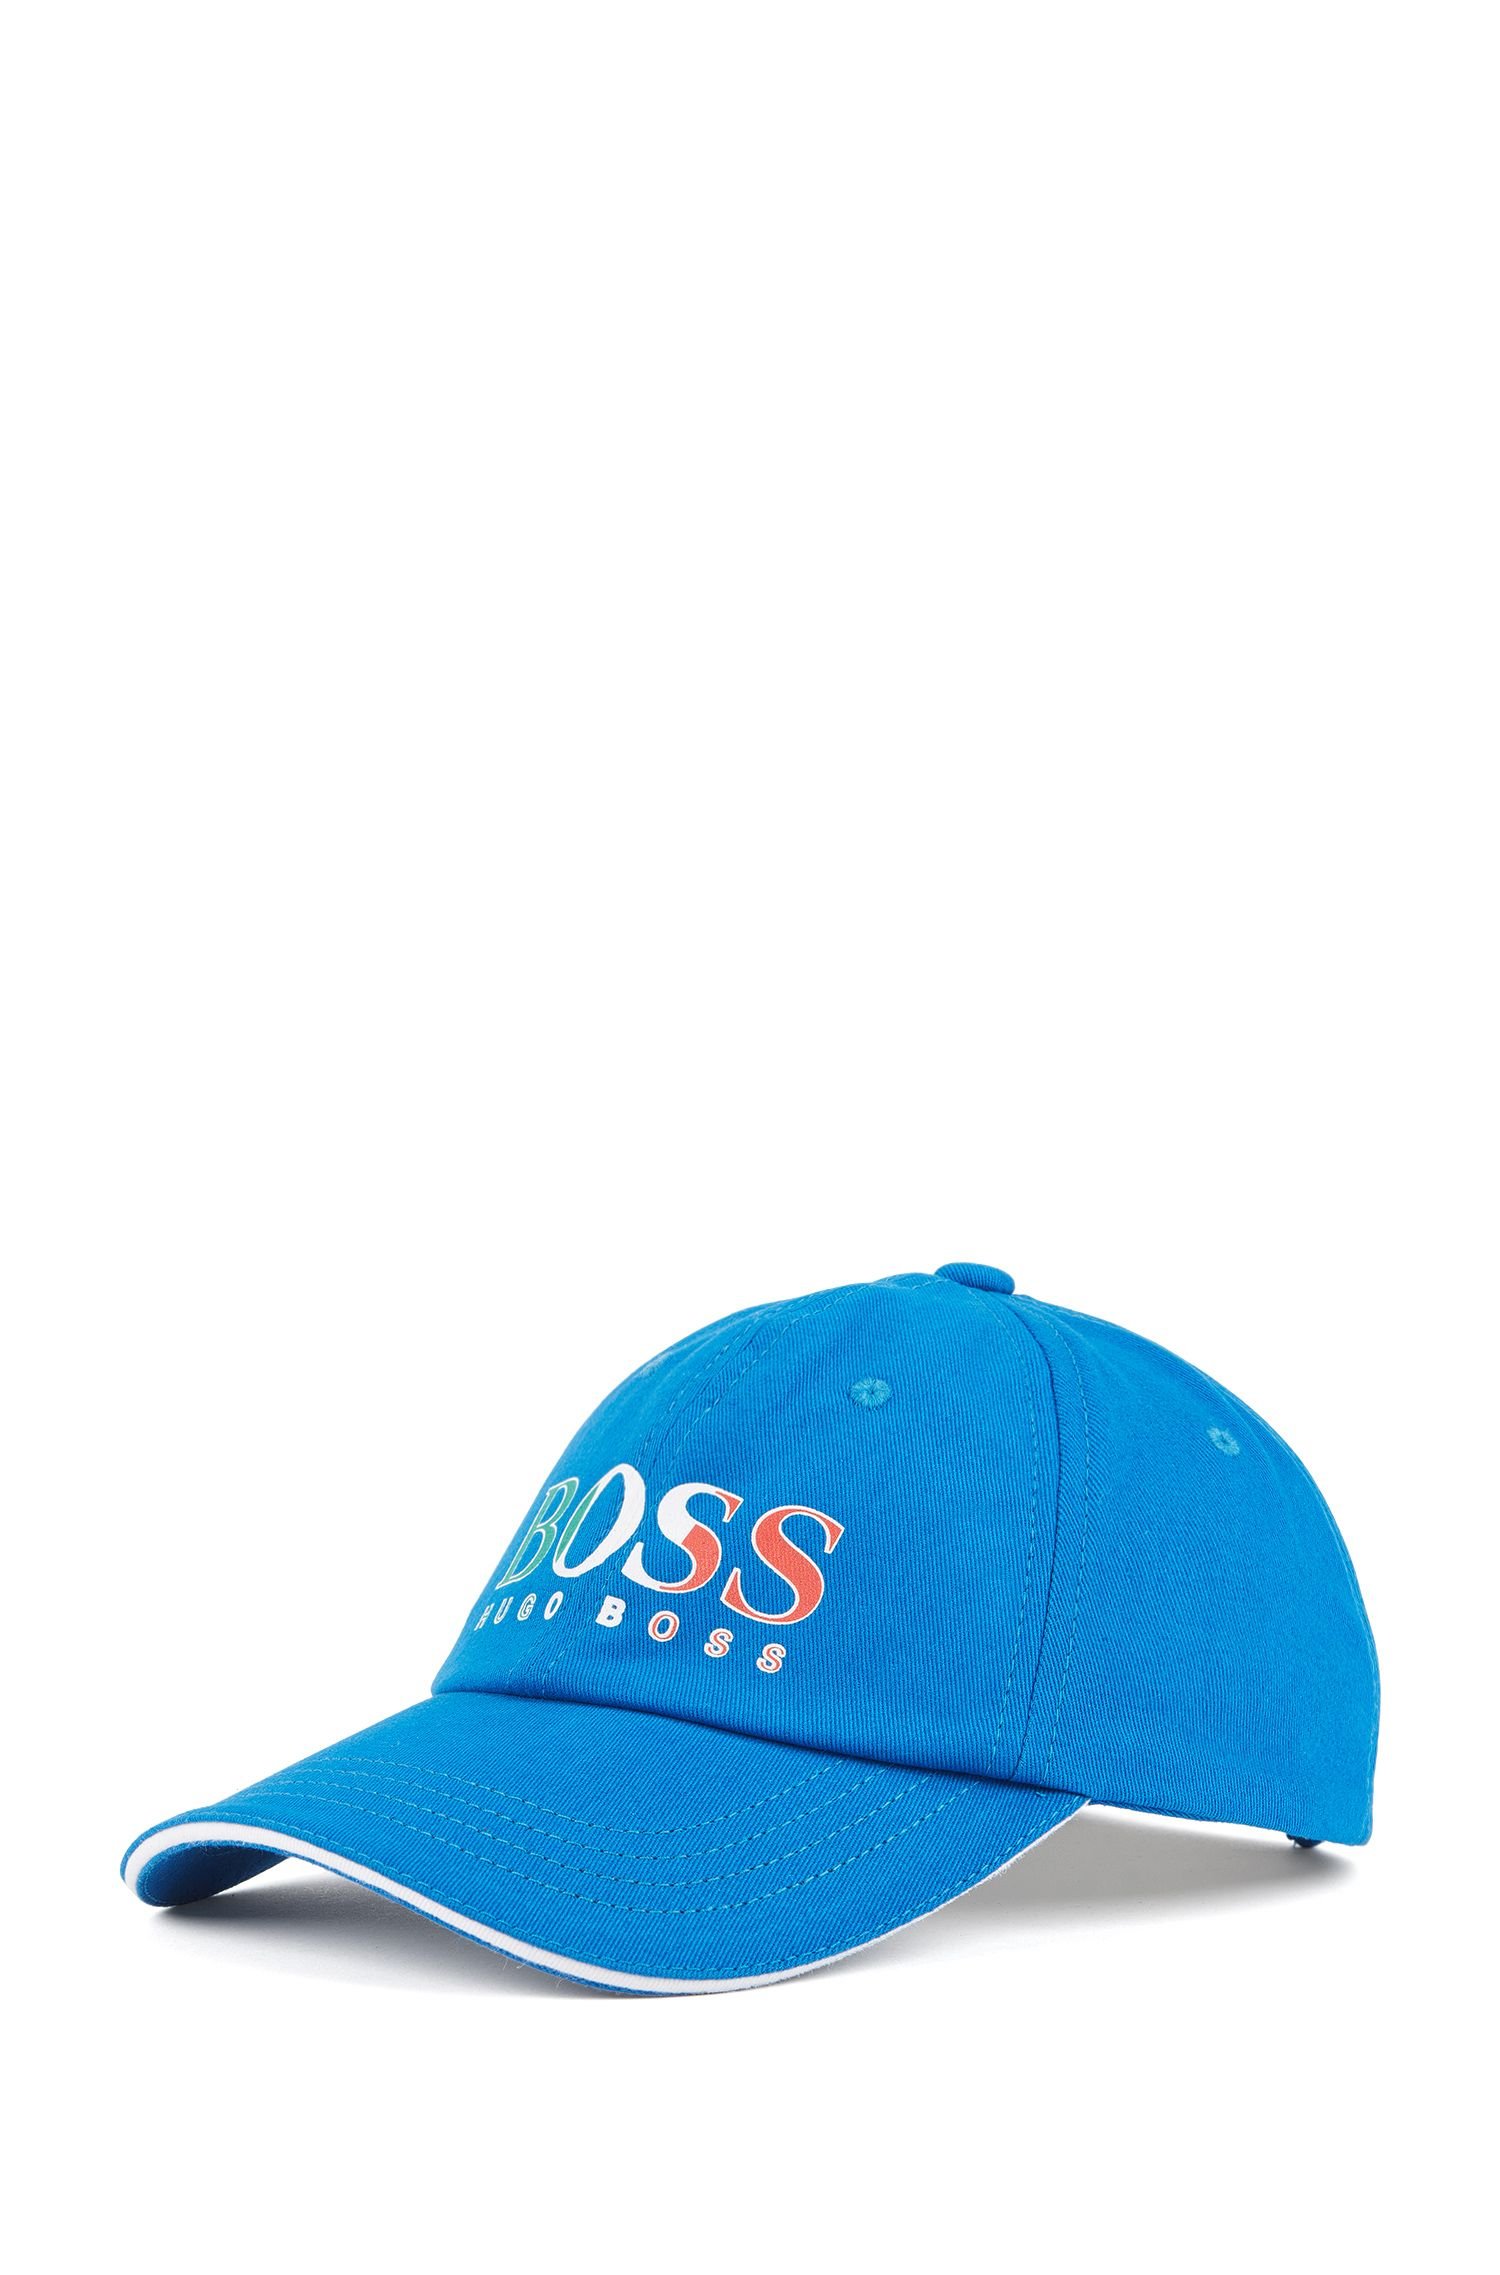 Kids' cap in cotton twill with Italy's team colours